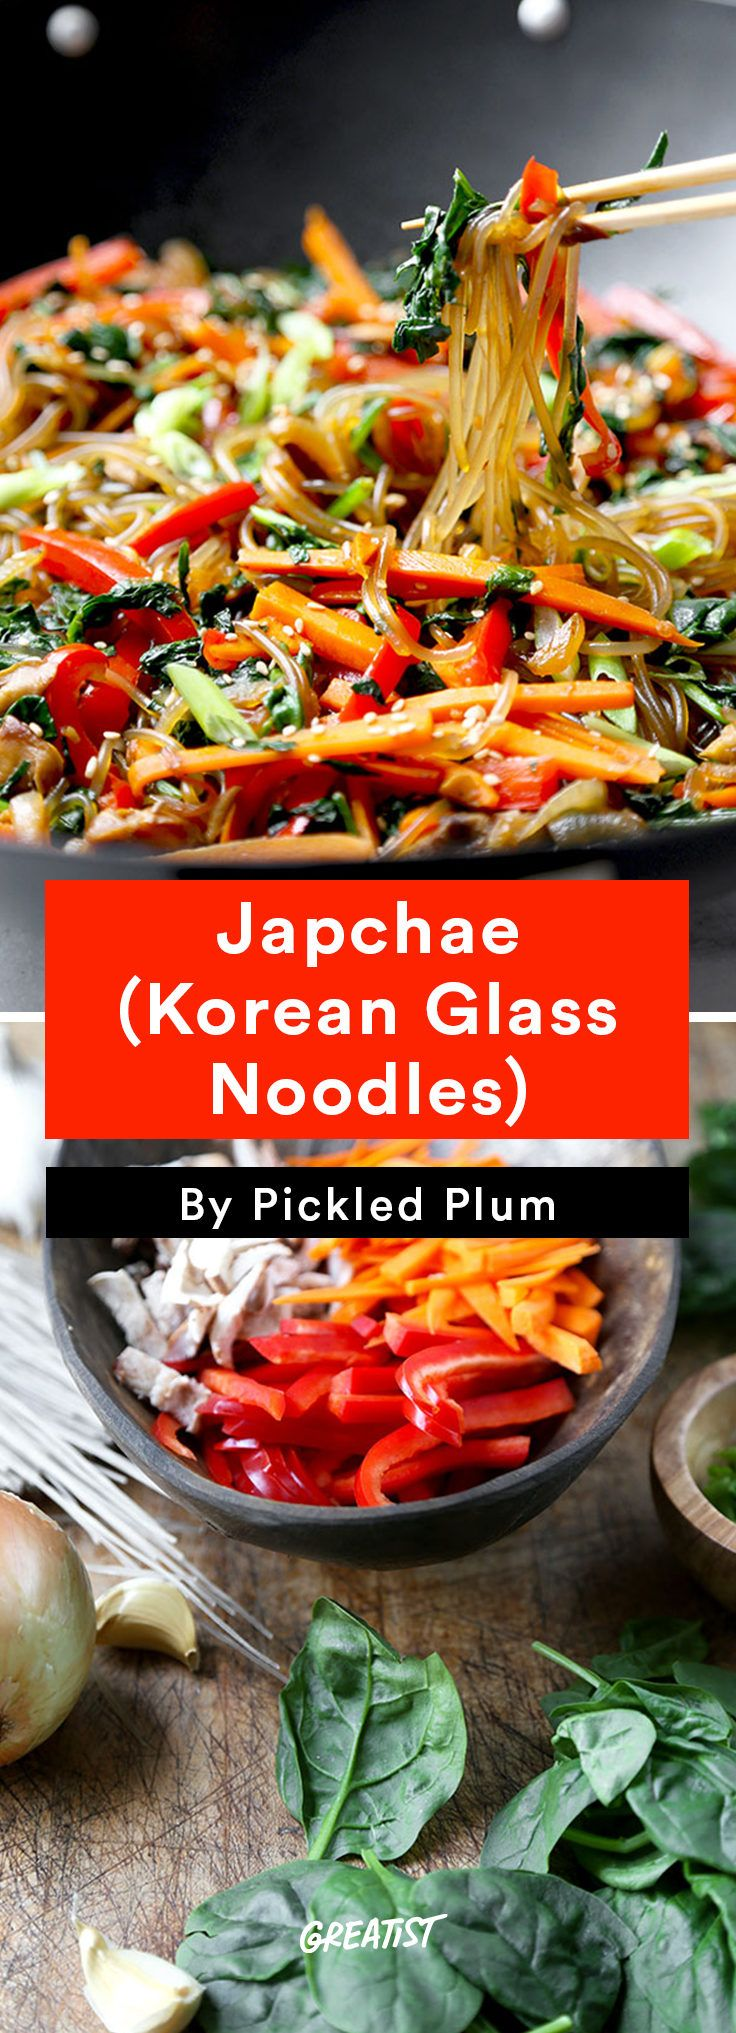 236 best korean eats images on pinterest korean food recipes 9 easy stir fry recipes that kick takeouts ass forumfinder Choice Image